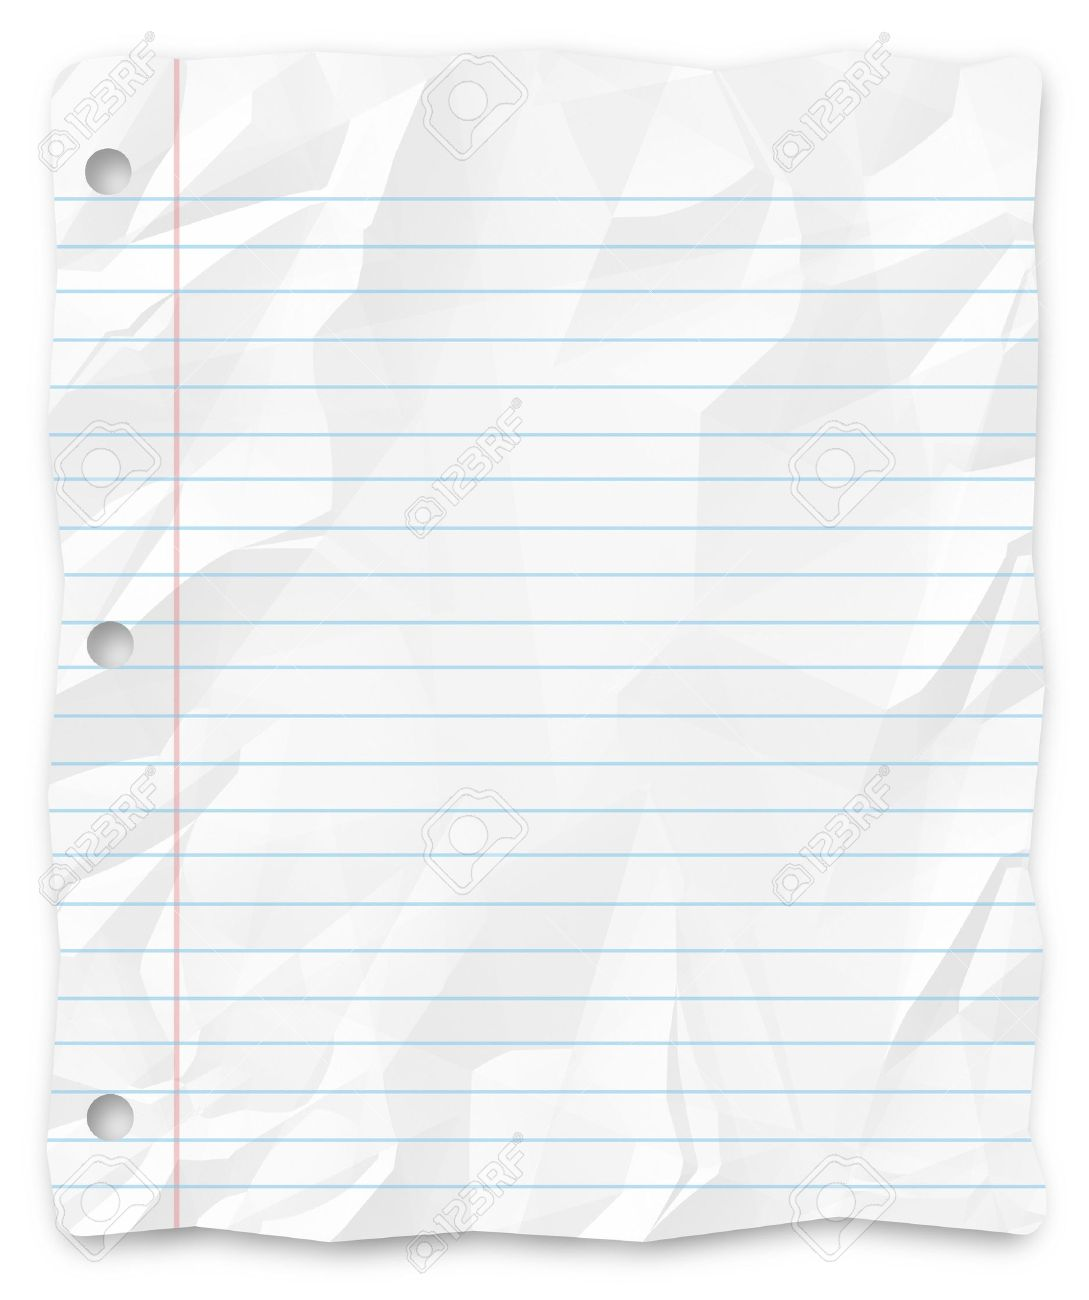 A White Wrinkled Piece Of Lined School Paper Background For – Loose Leaf Paper Background